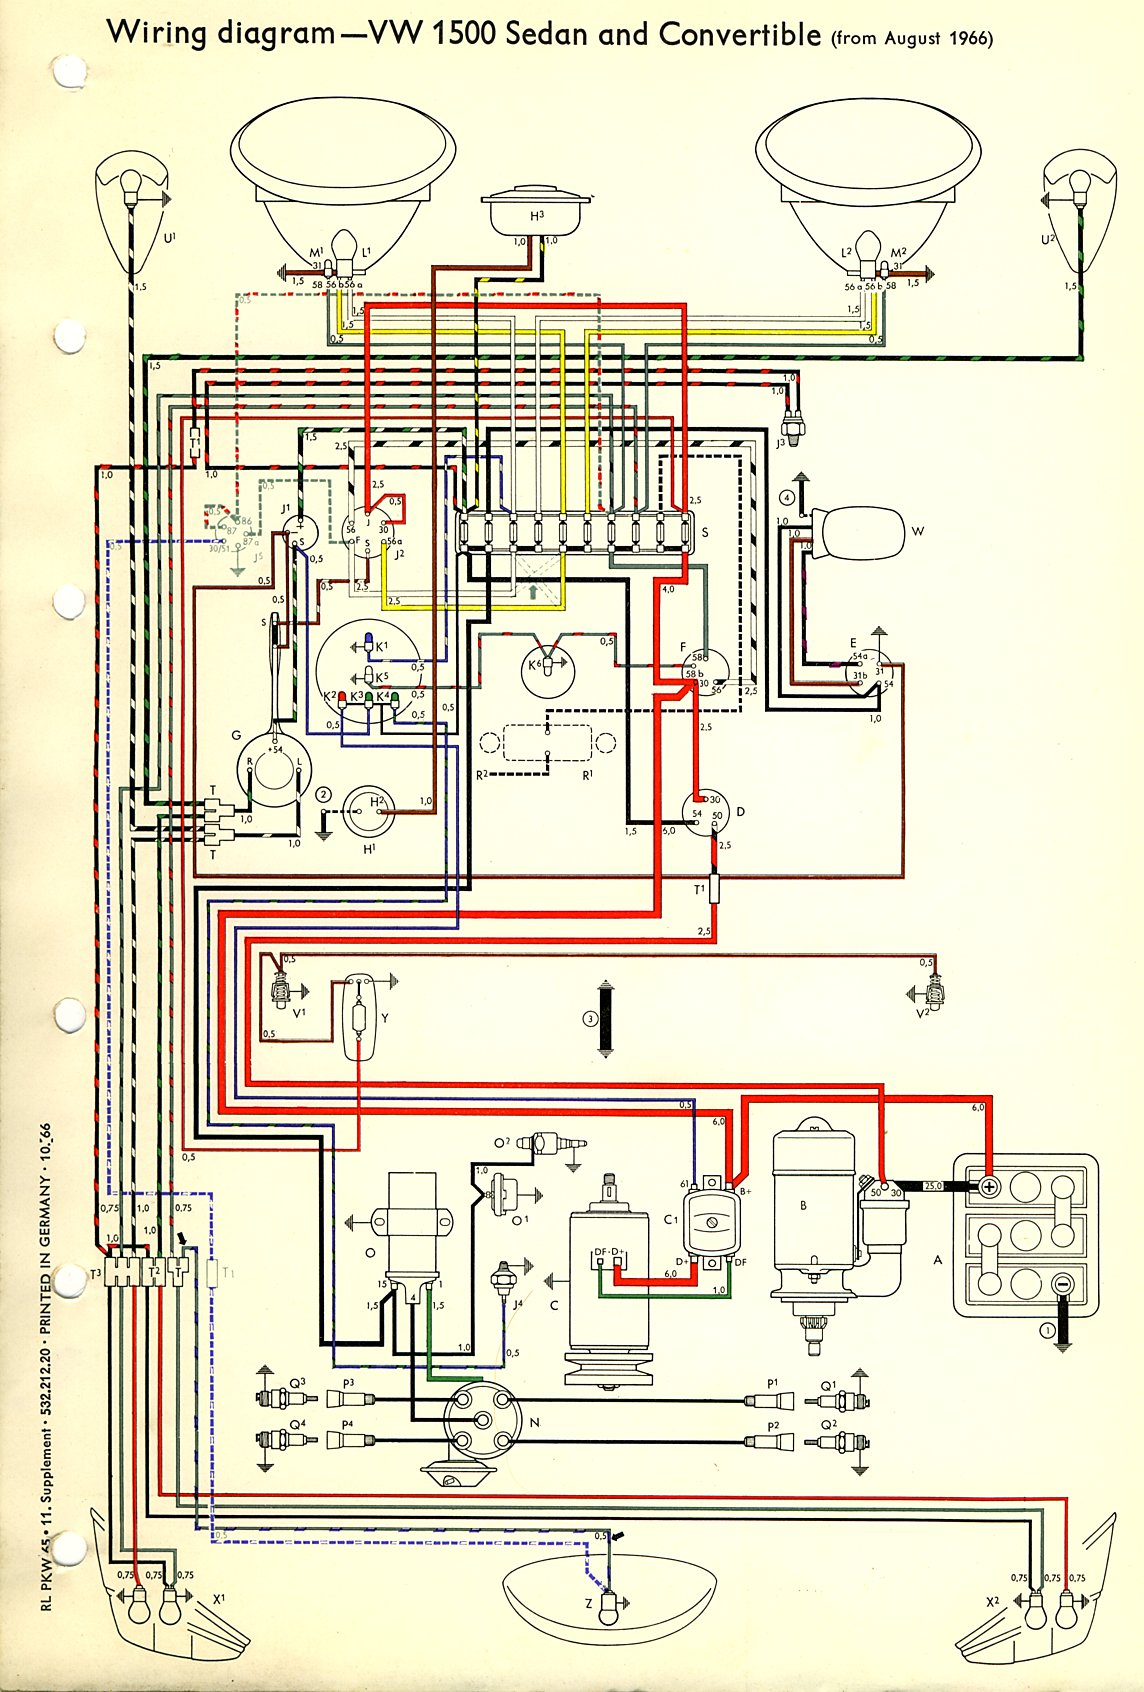 1974 Super Beetle Wiring Diagram Libraries Raypak Boiler 183 Thesamba Com Type 1 Diagrams1974 2